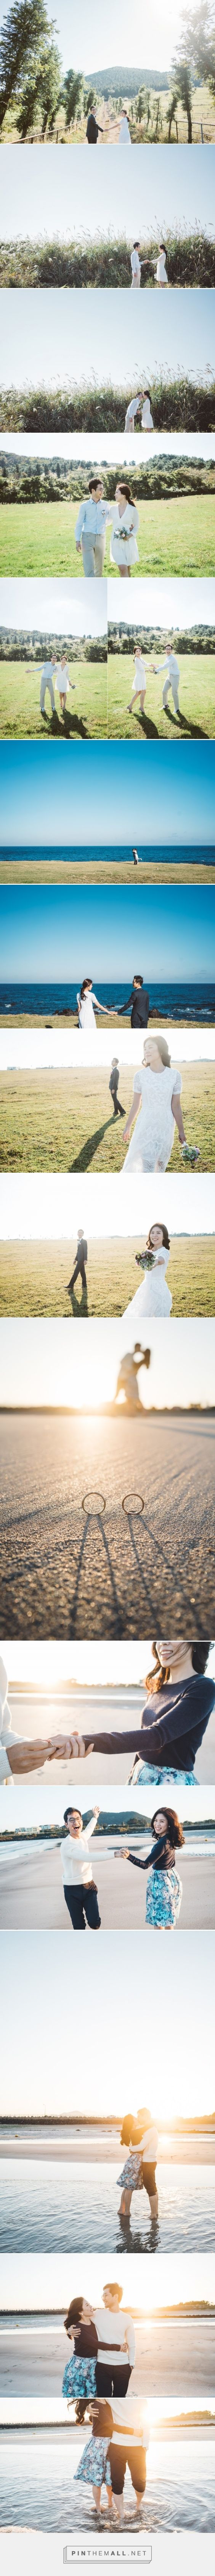 best images about 웨딩 on pinterest couple photography photo